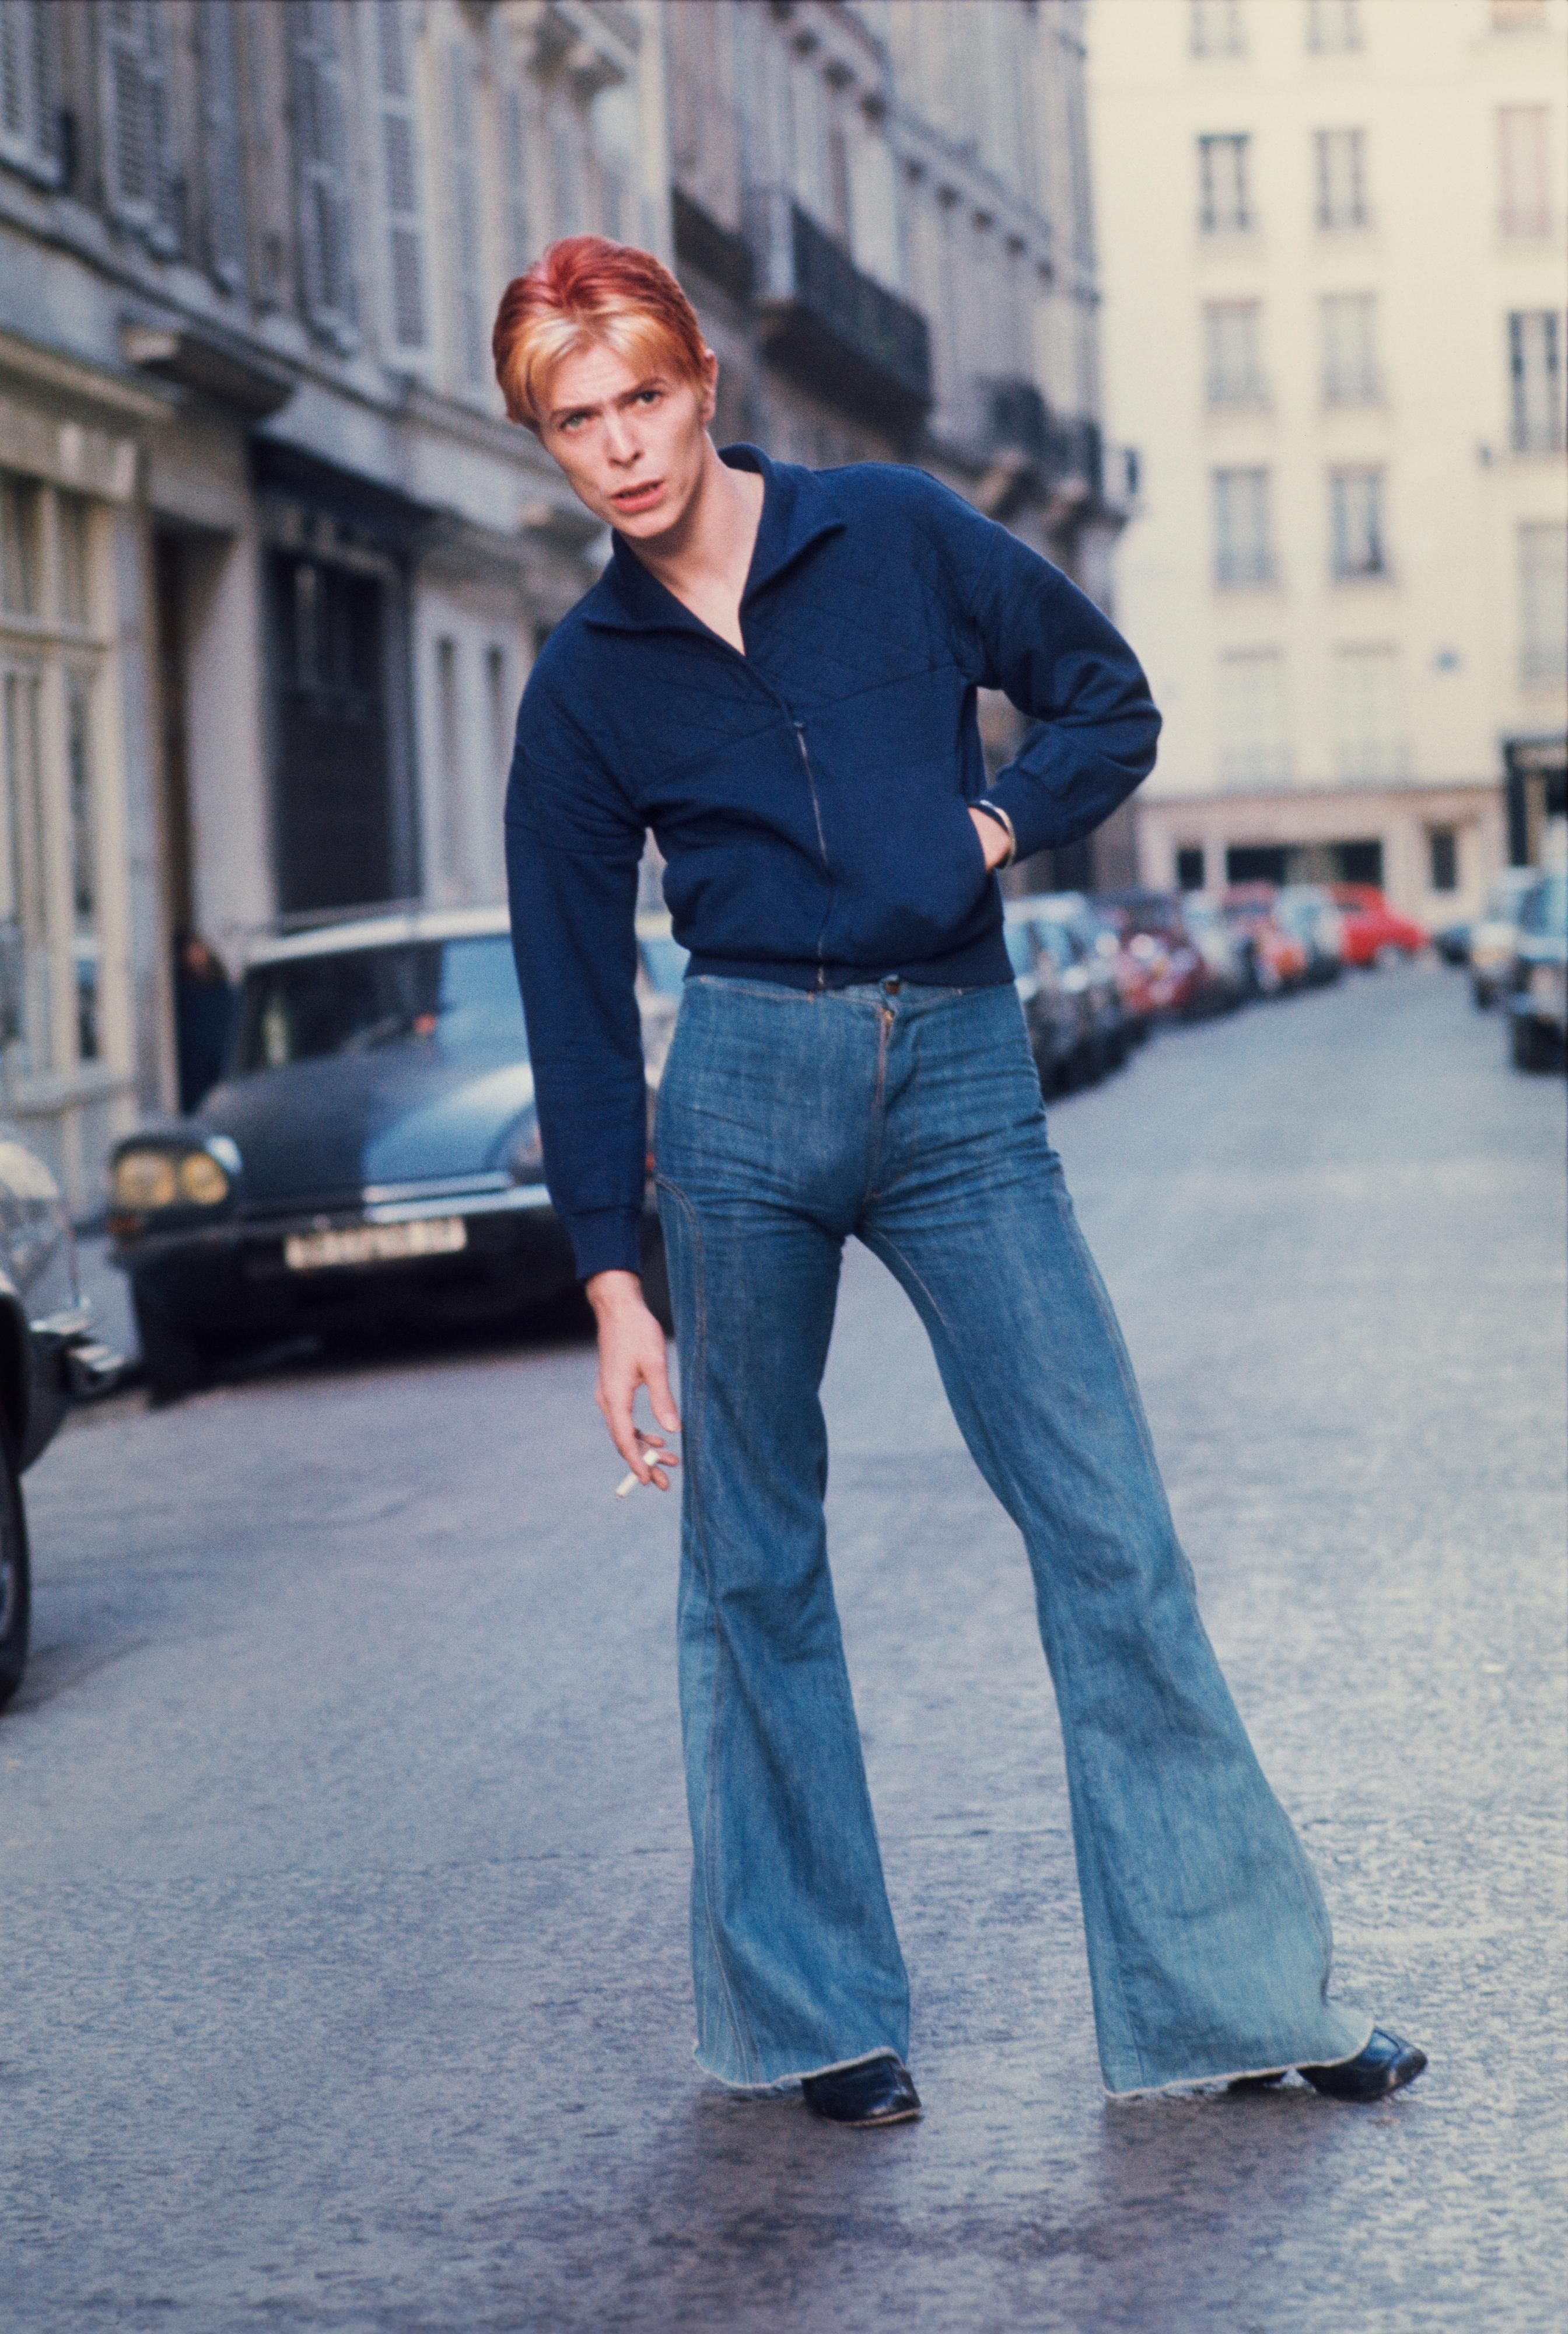 David Bowie in the street outside L'Hotel in Paris in 1976